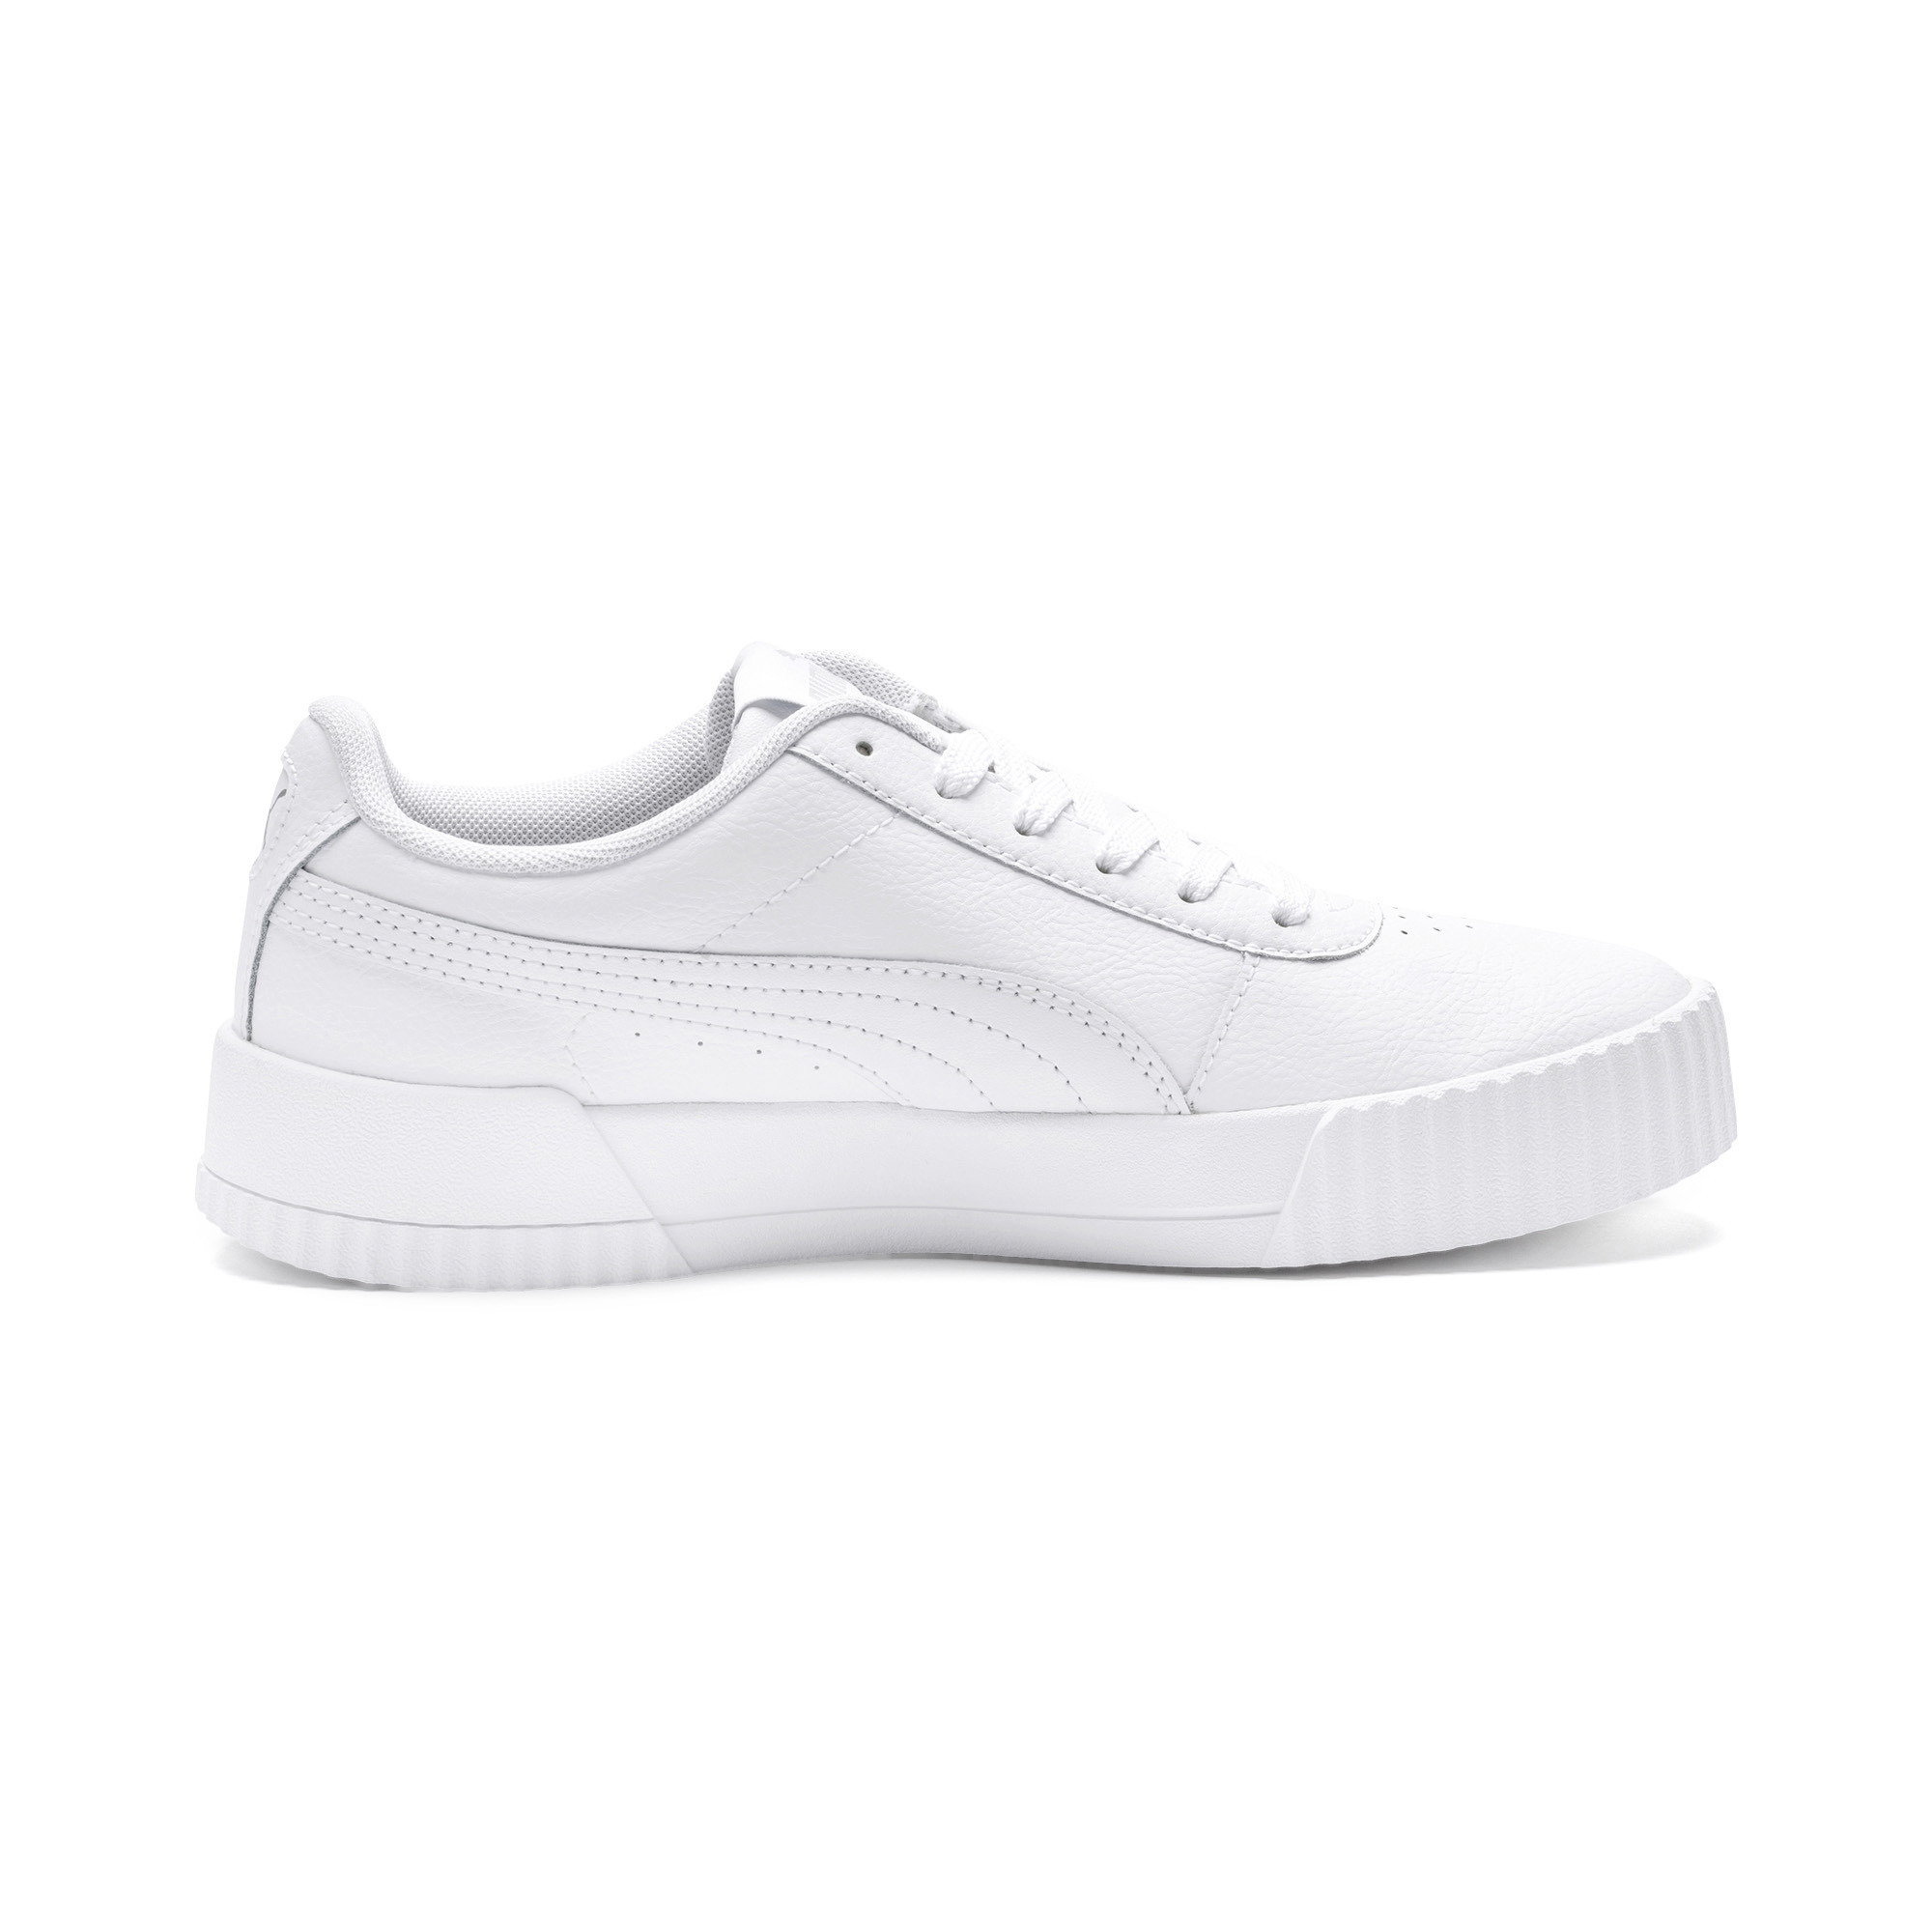 PUMA-Carina-Leather-Women-s-Sneakers-Women-Shoe-Basics thumbnail 6